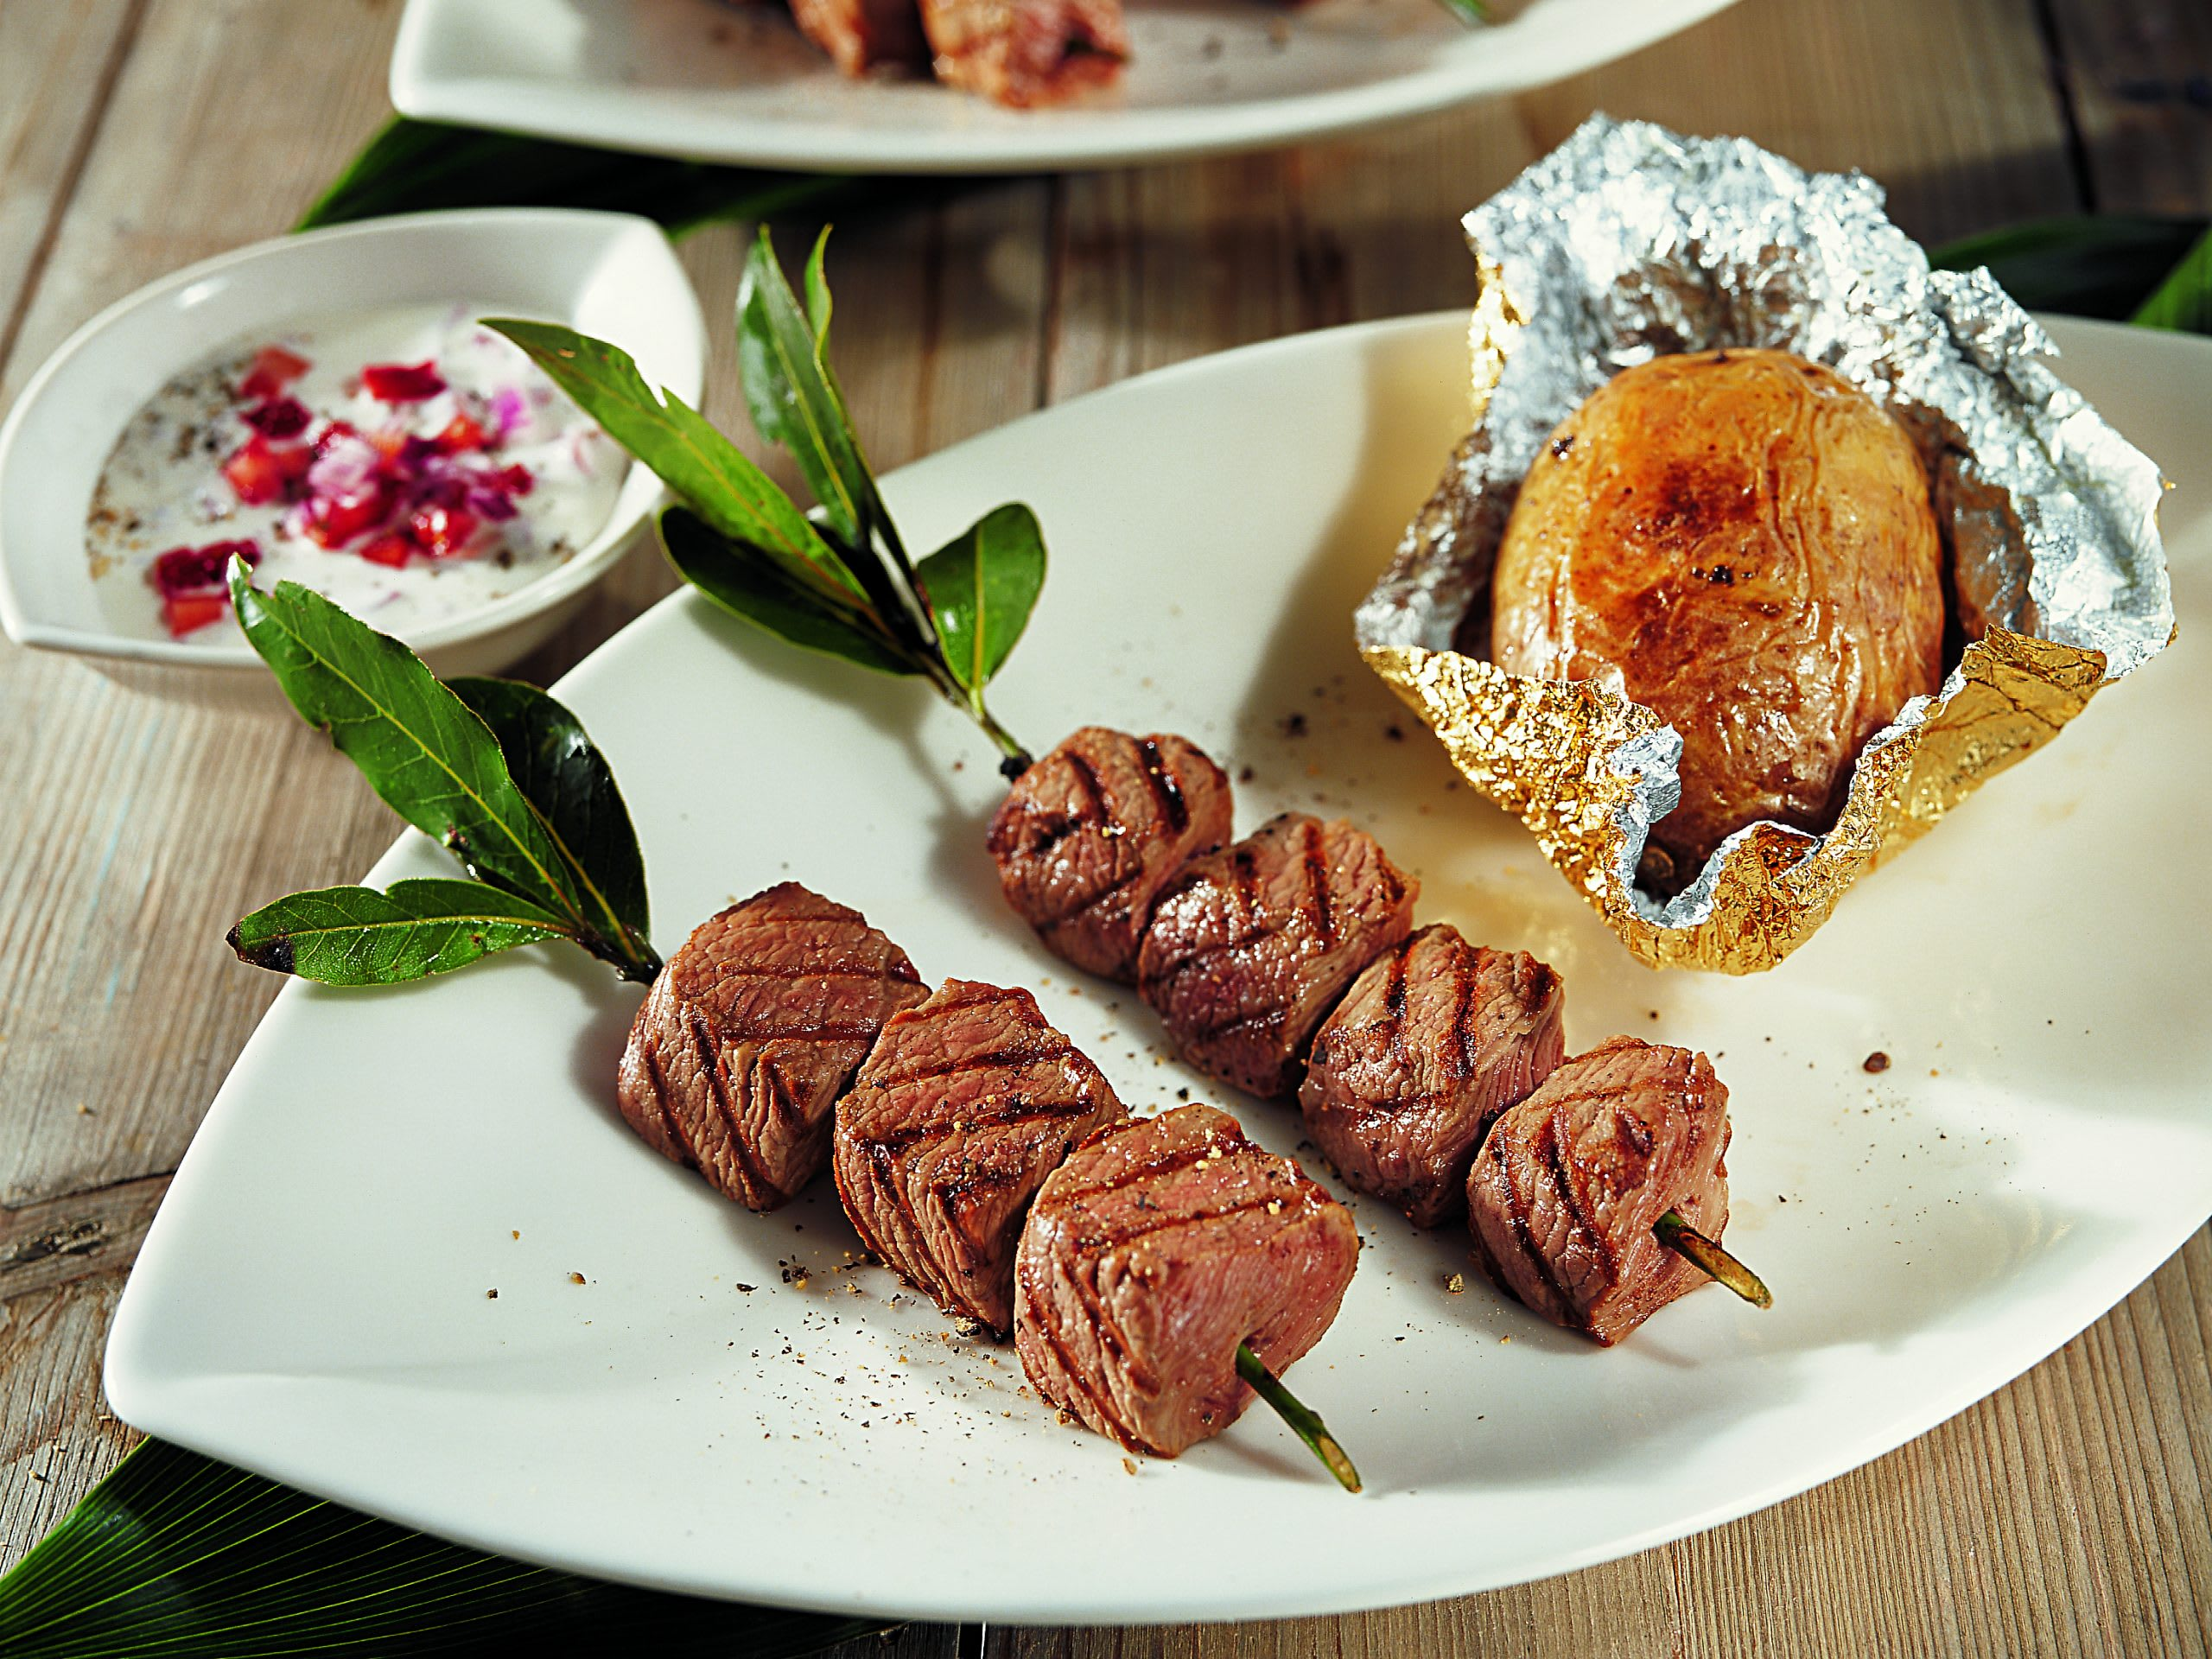 Brochettes d'agneau au barbecue, baked potatoes et sauce